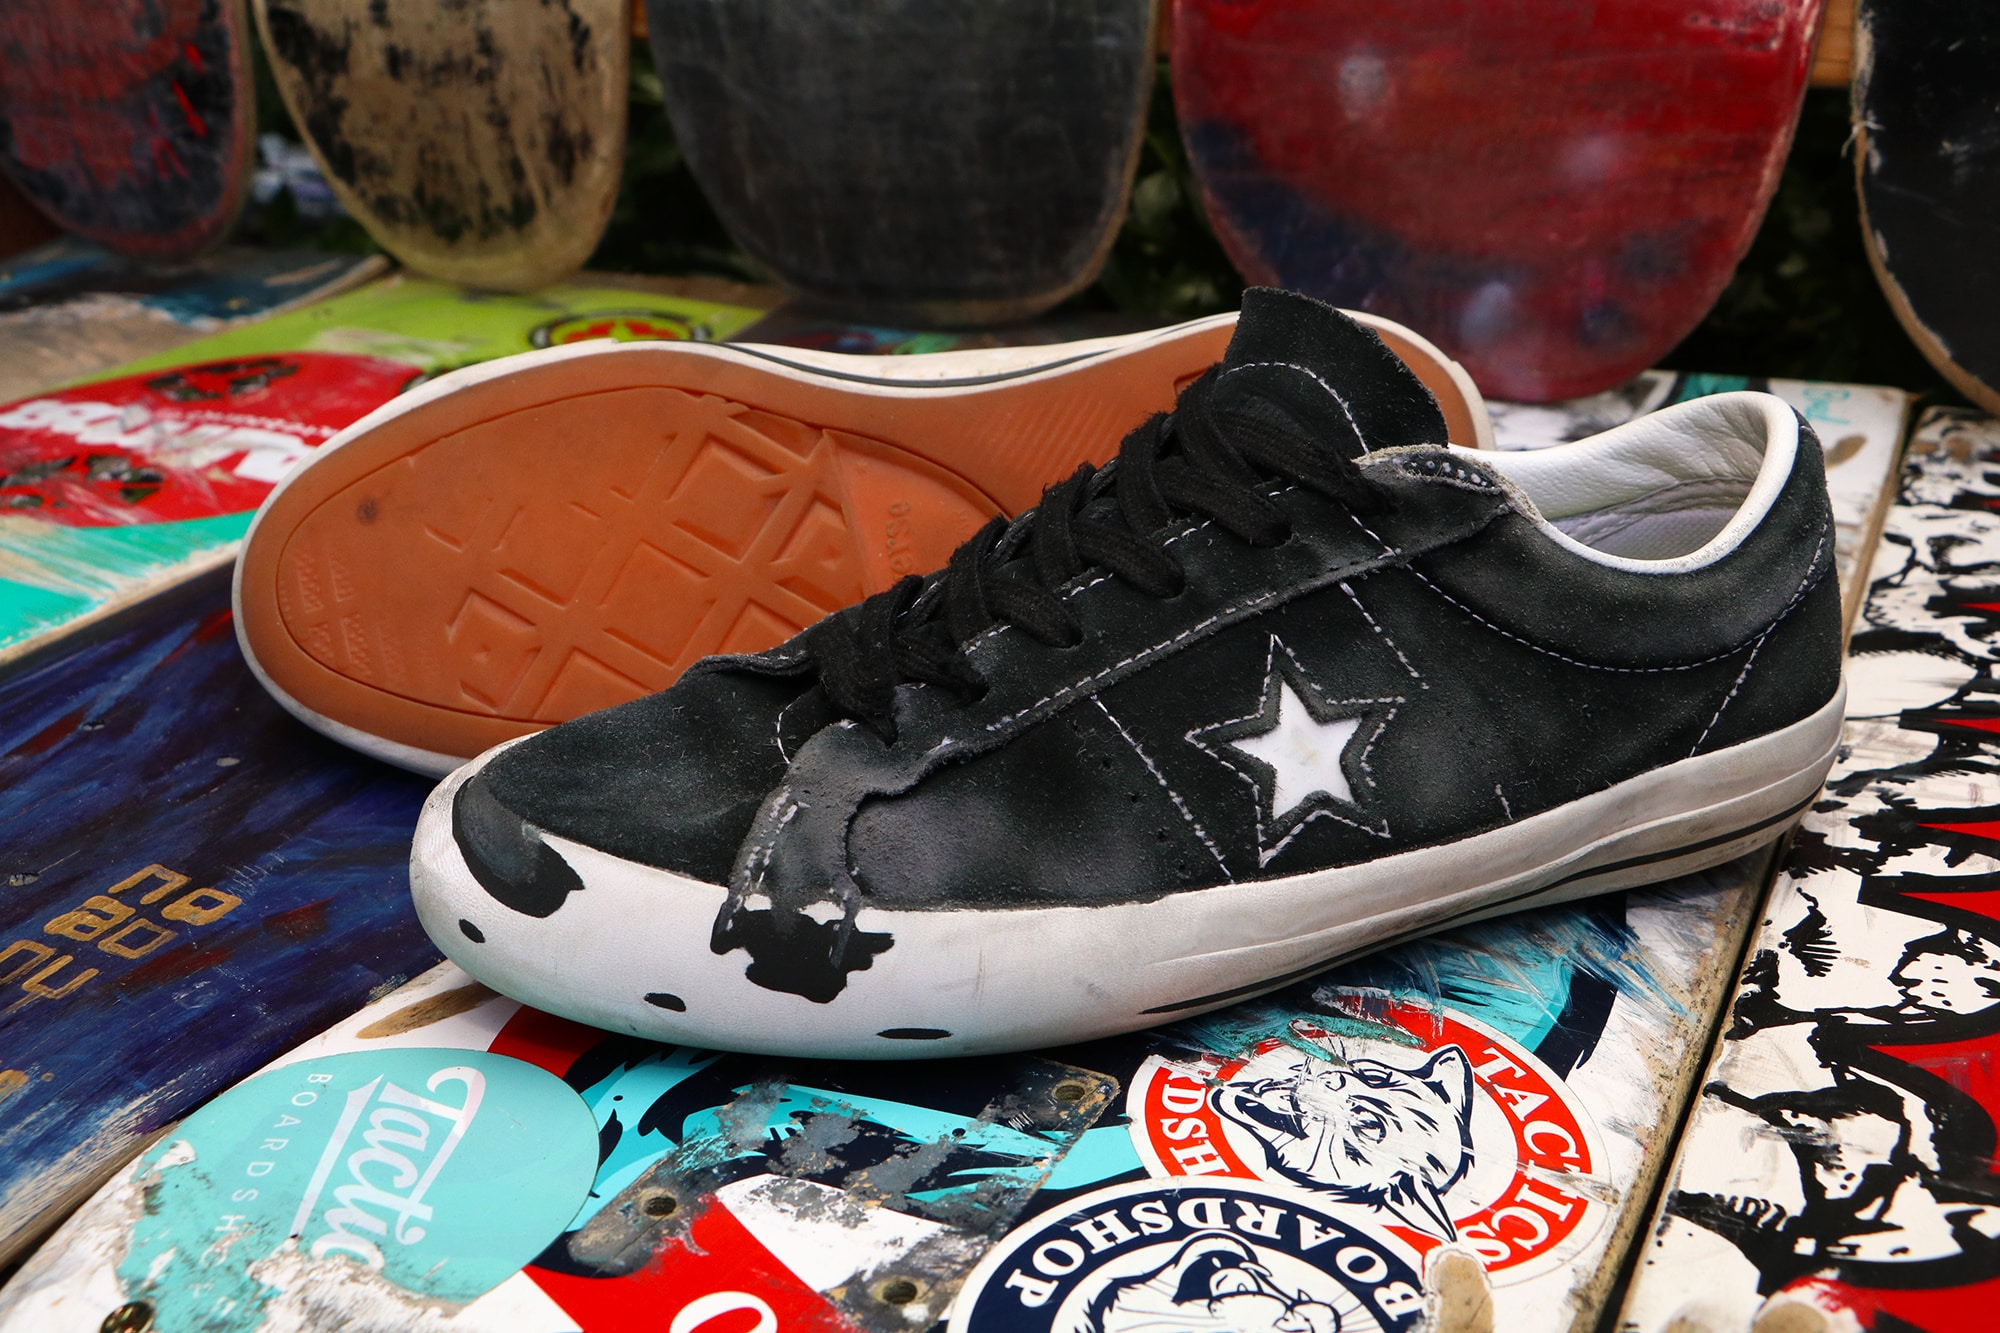 colonia Porque Razón  Converse One Star Pro Skate Shoes Wear Test Review | Tactics